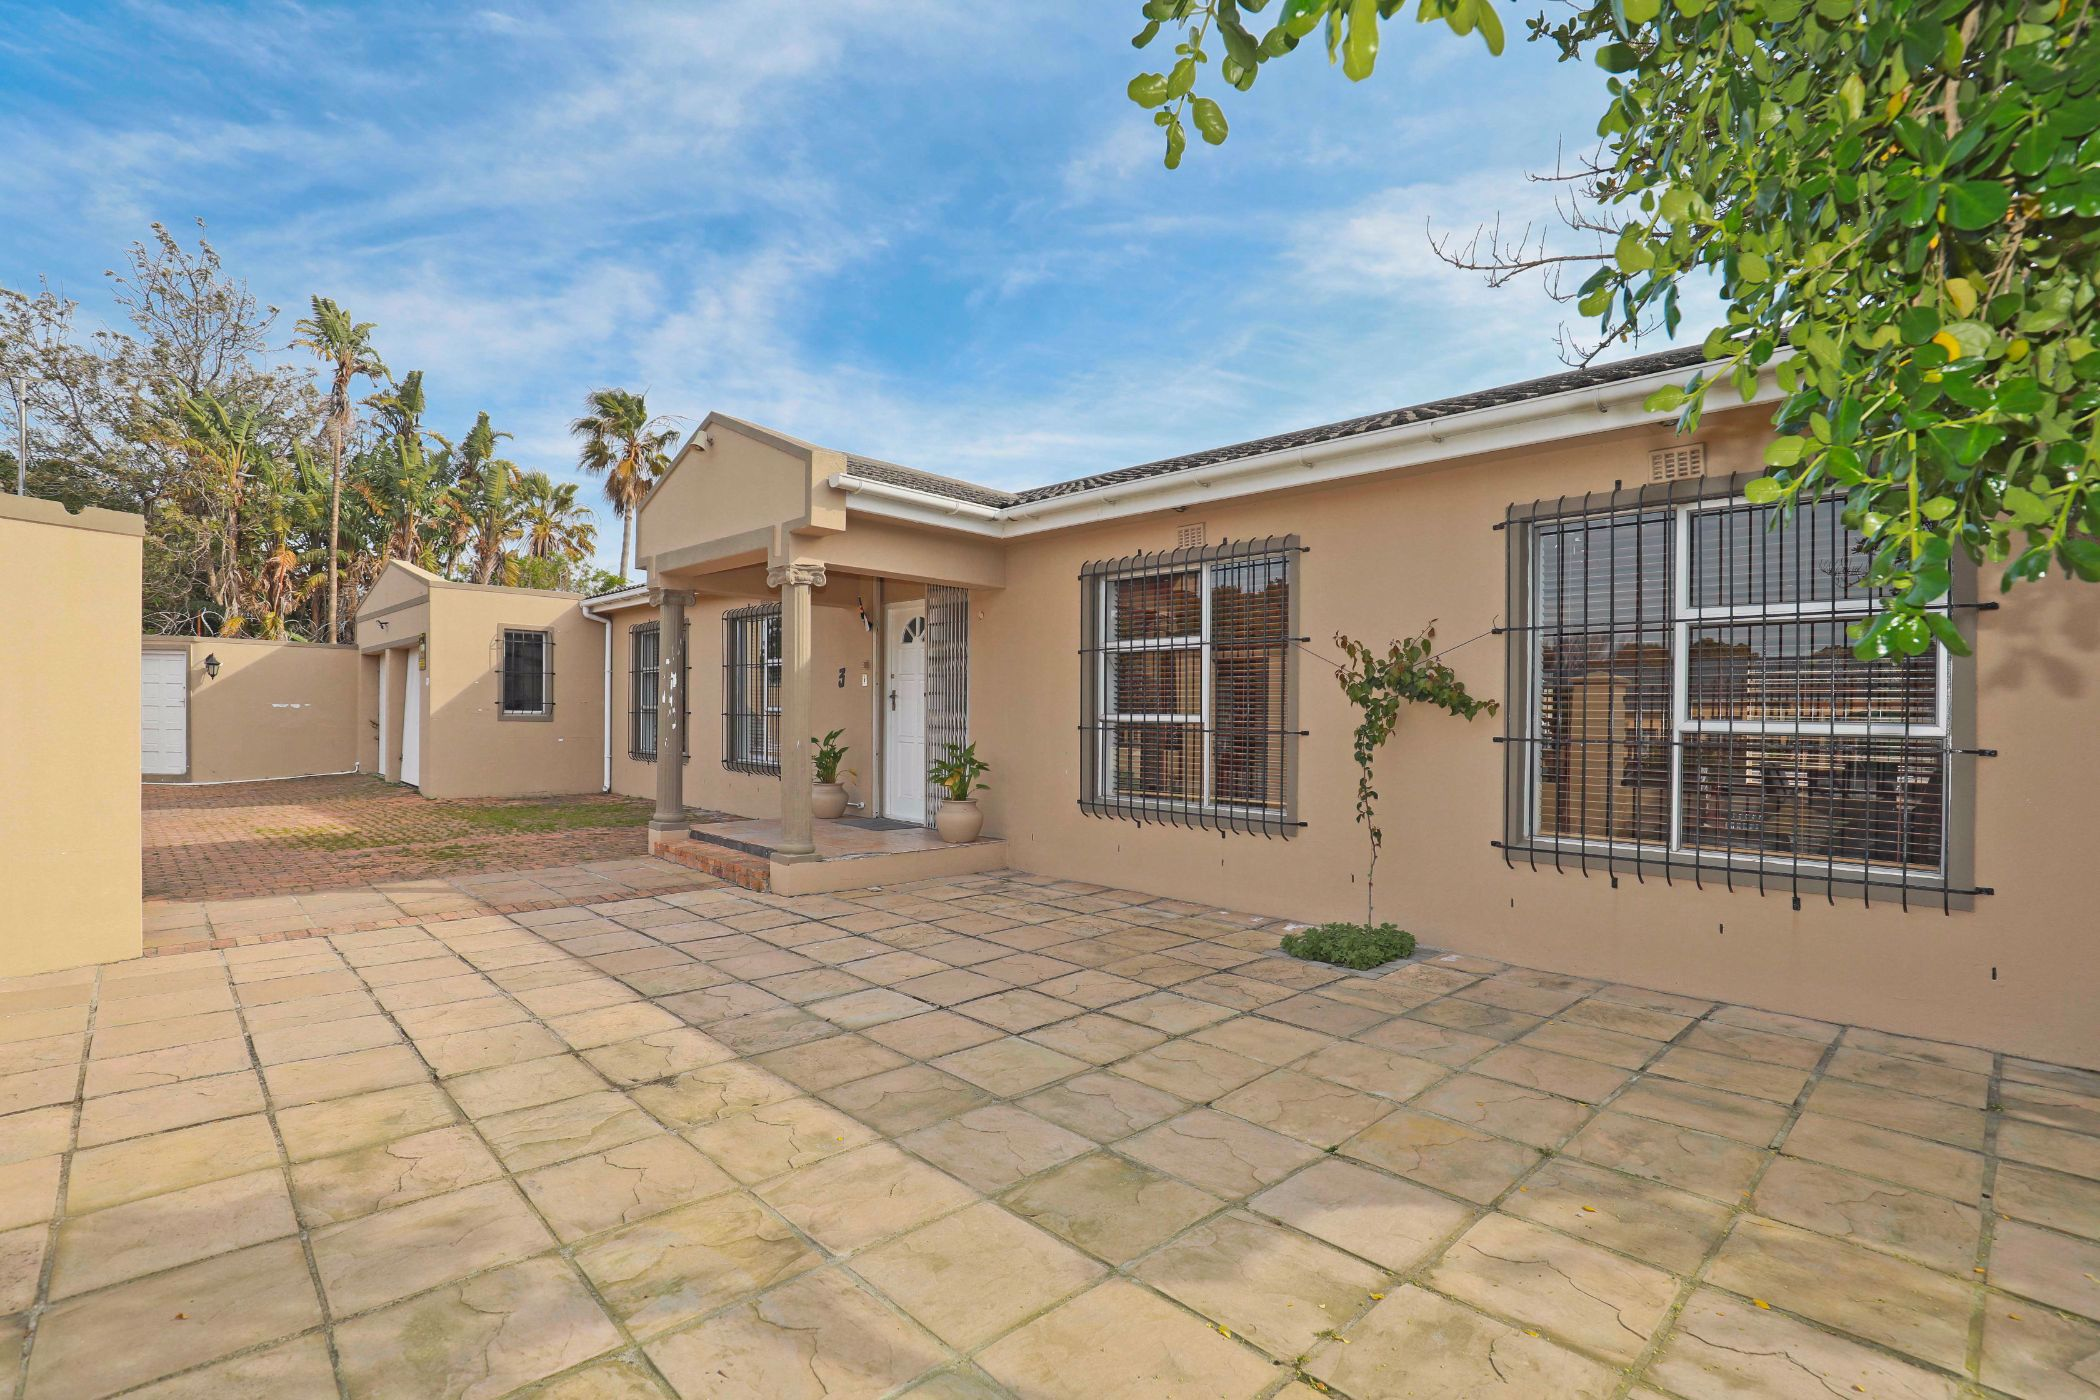 6 bedroom house for sale in Ottery